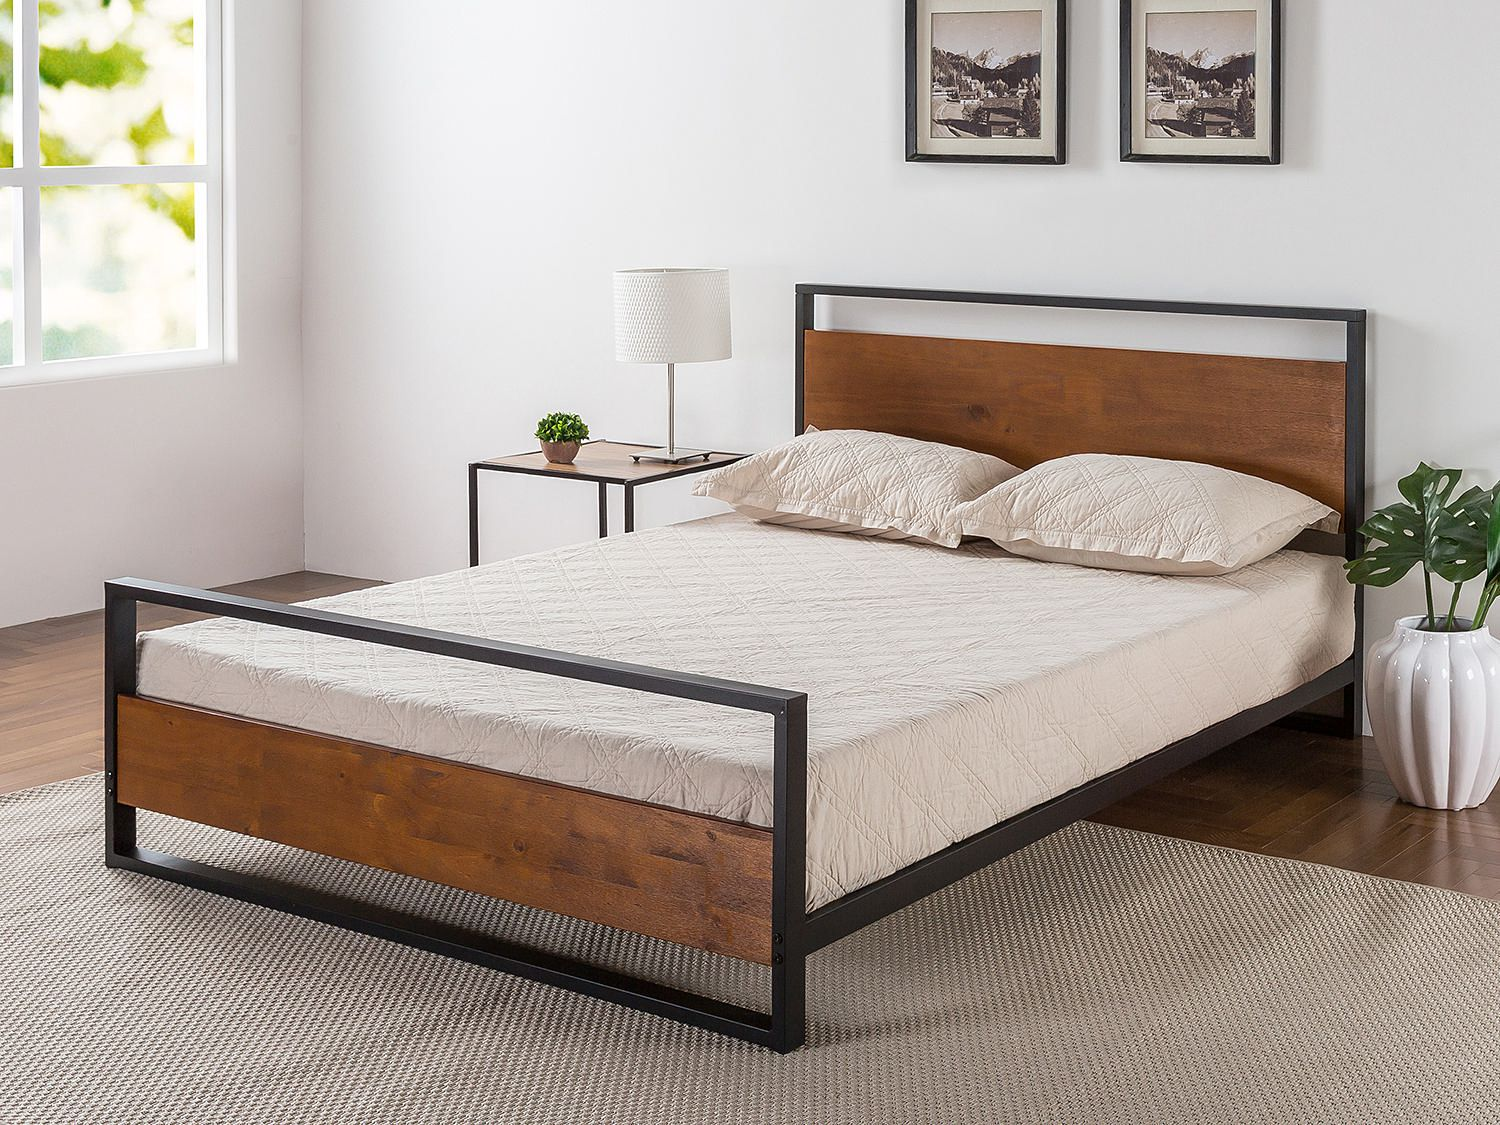 Zinus-Ironline-Metal-Wood-Bed-Frame-Queen-Single-Double-King-Base-Mattress-Pine thumbnail 11